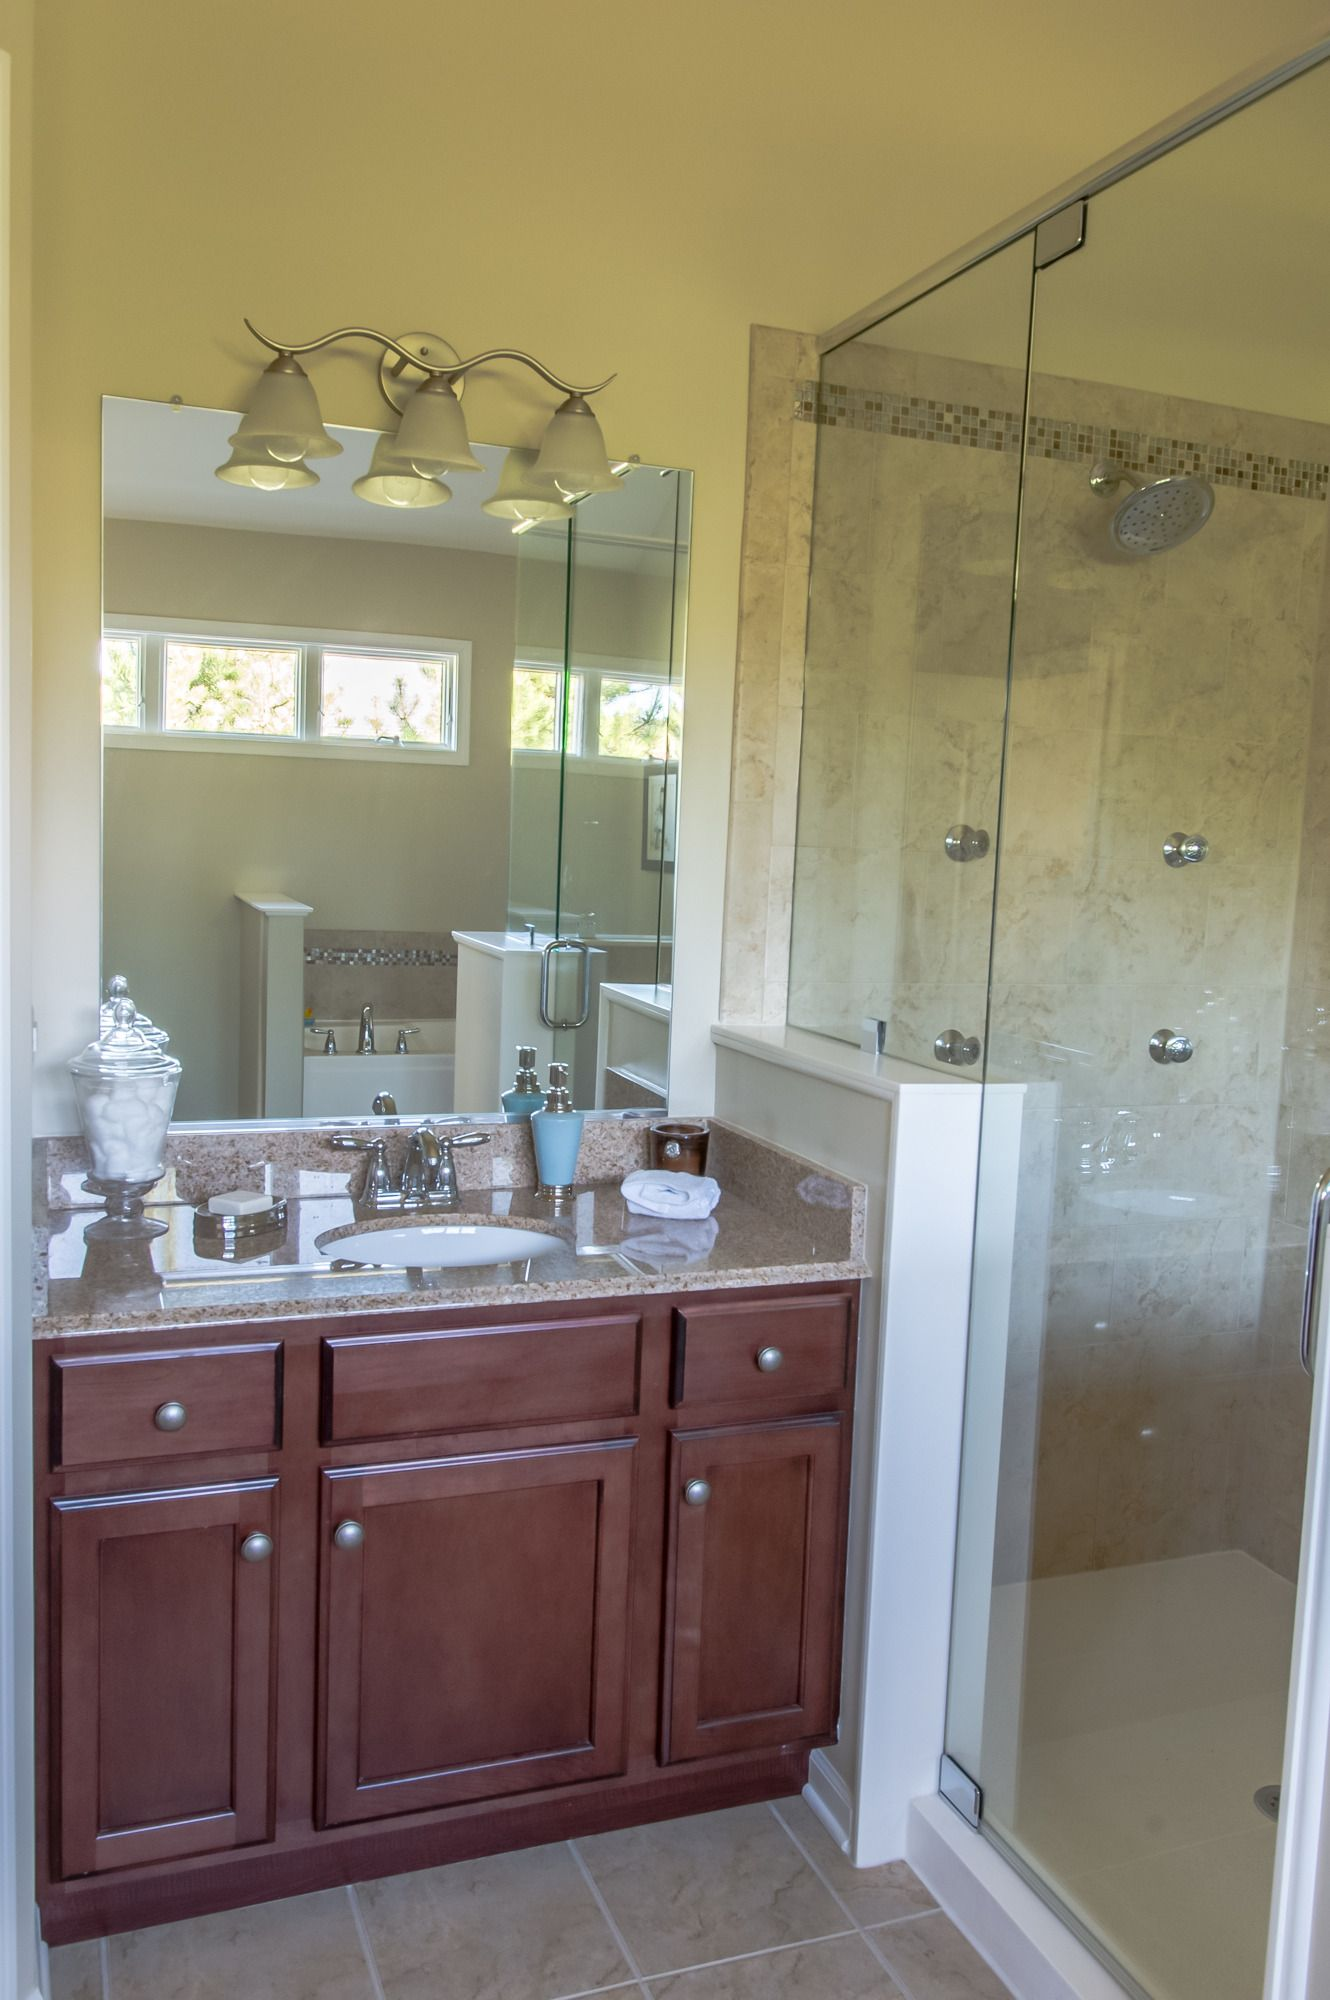 Bathroom featured in the Amberwood By Gallagher and Henry in Chicago, IL